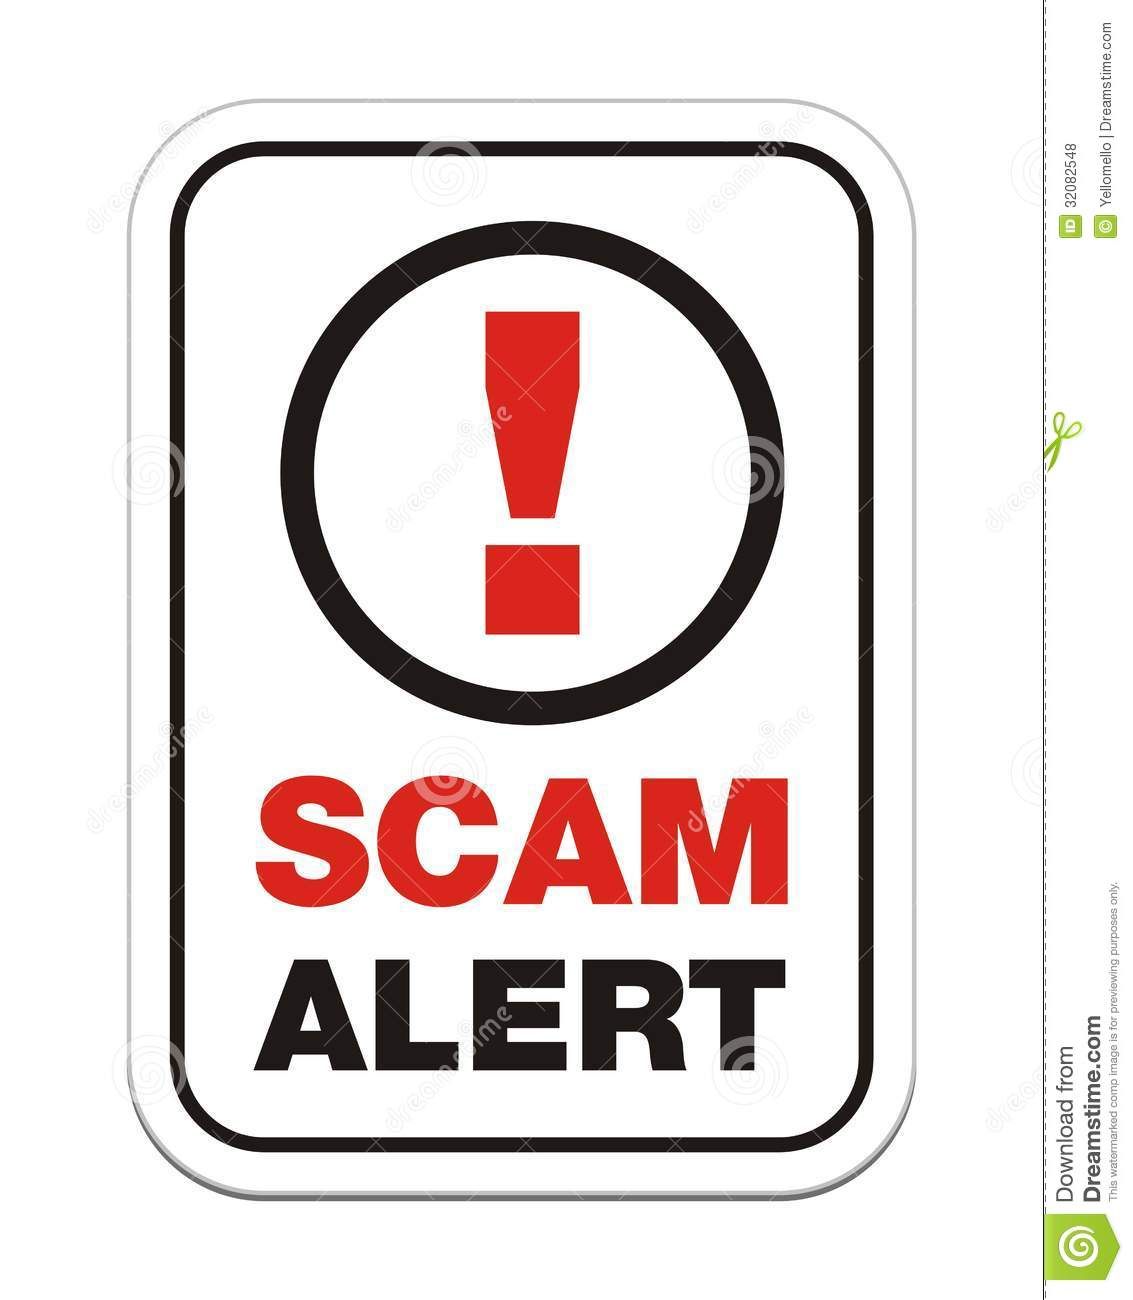 phone scam clip art cliparts rh okclipart com Social Security Telephone Scam Scam Alert